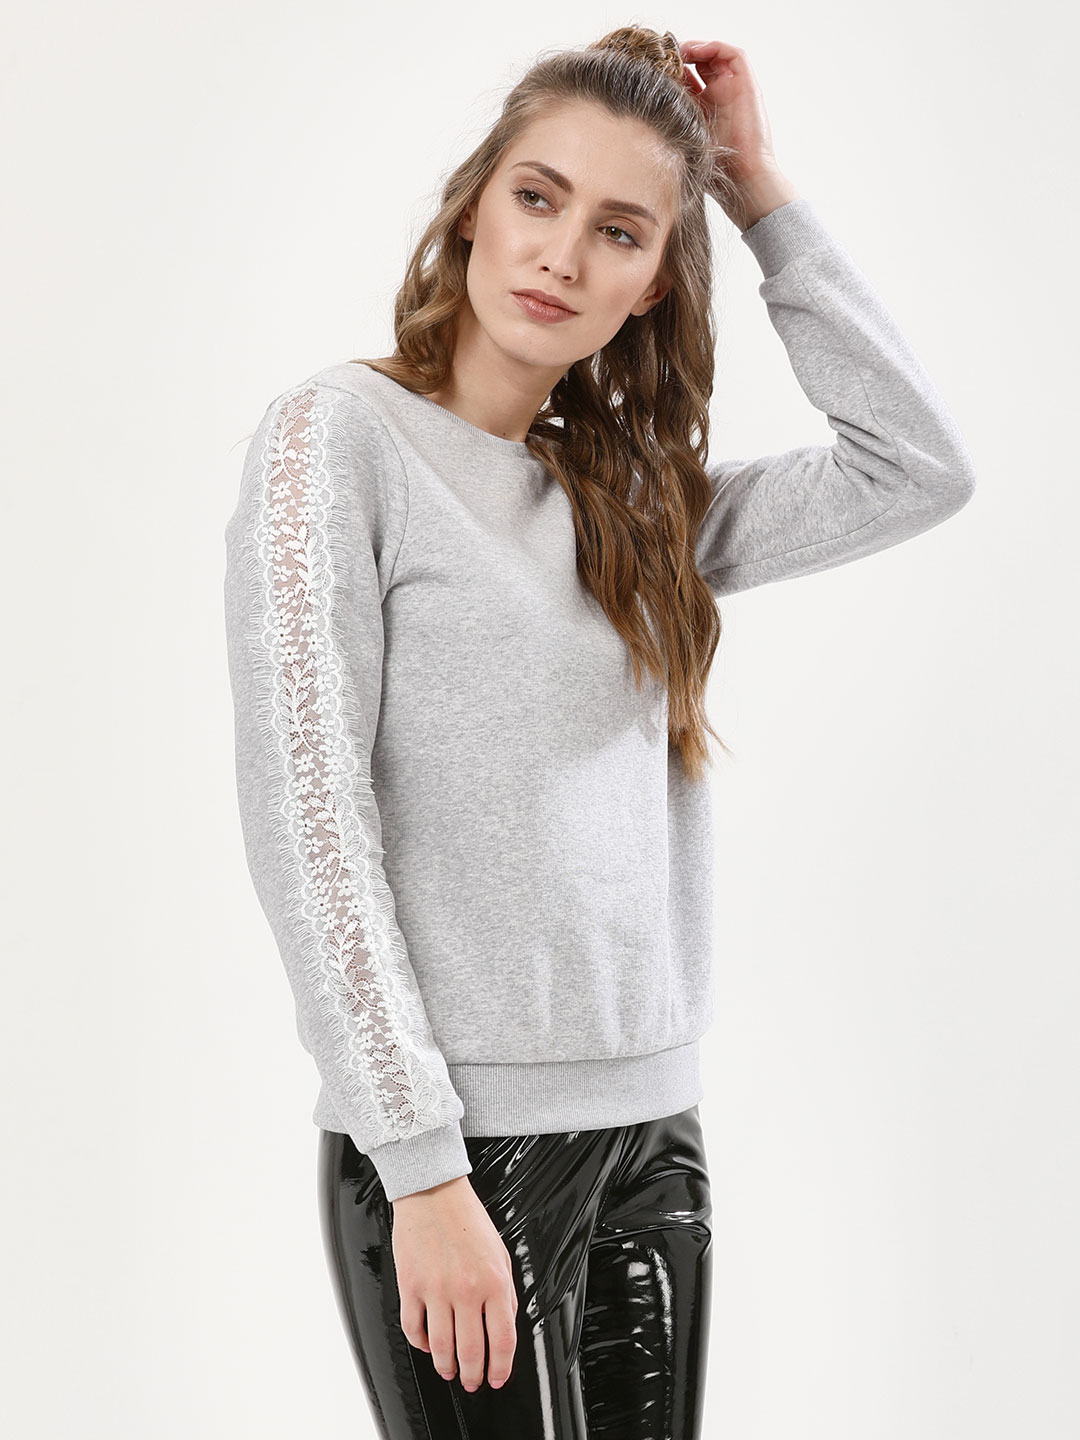 Femella Grey Lace Insert Crew Neck Sweatshirt 1